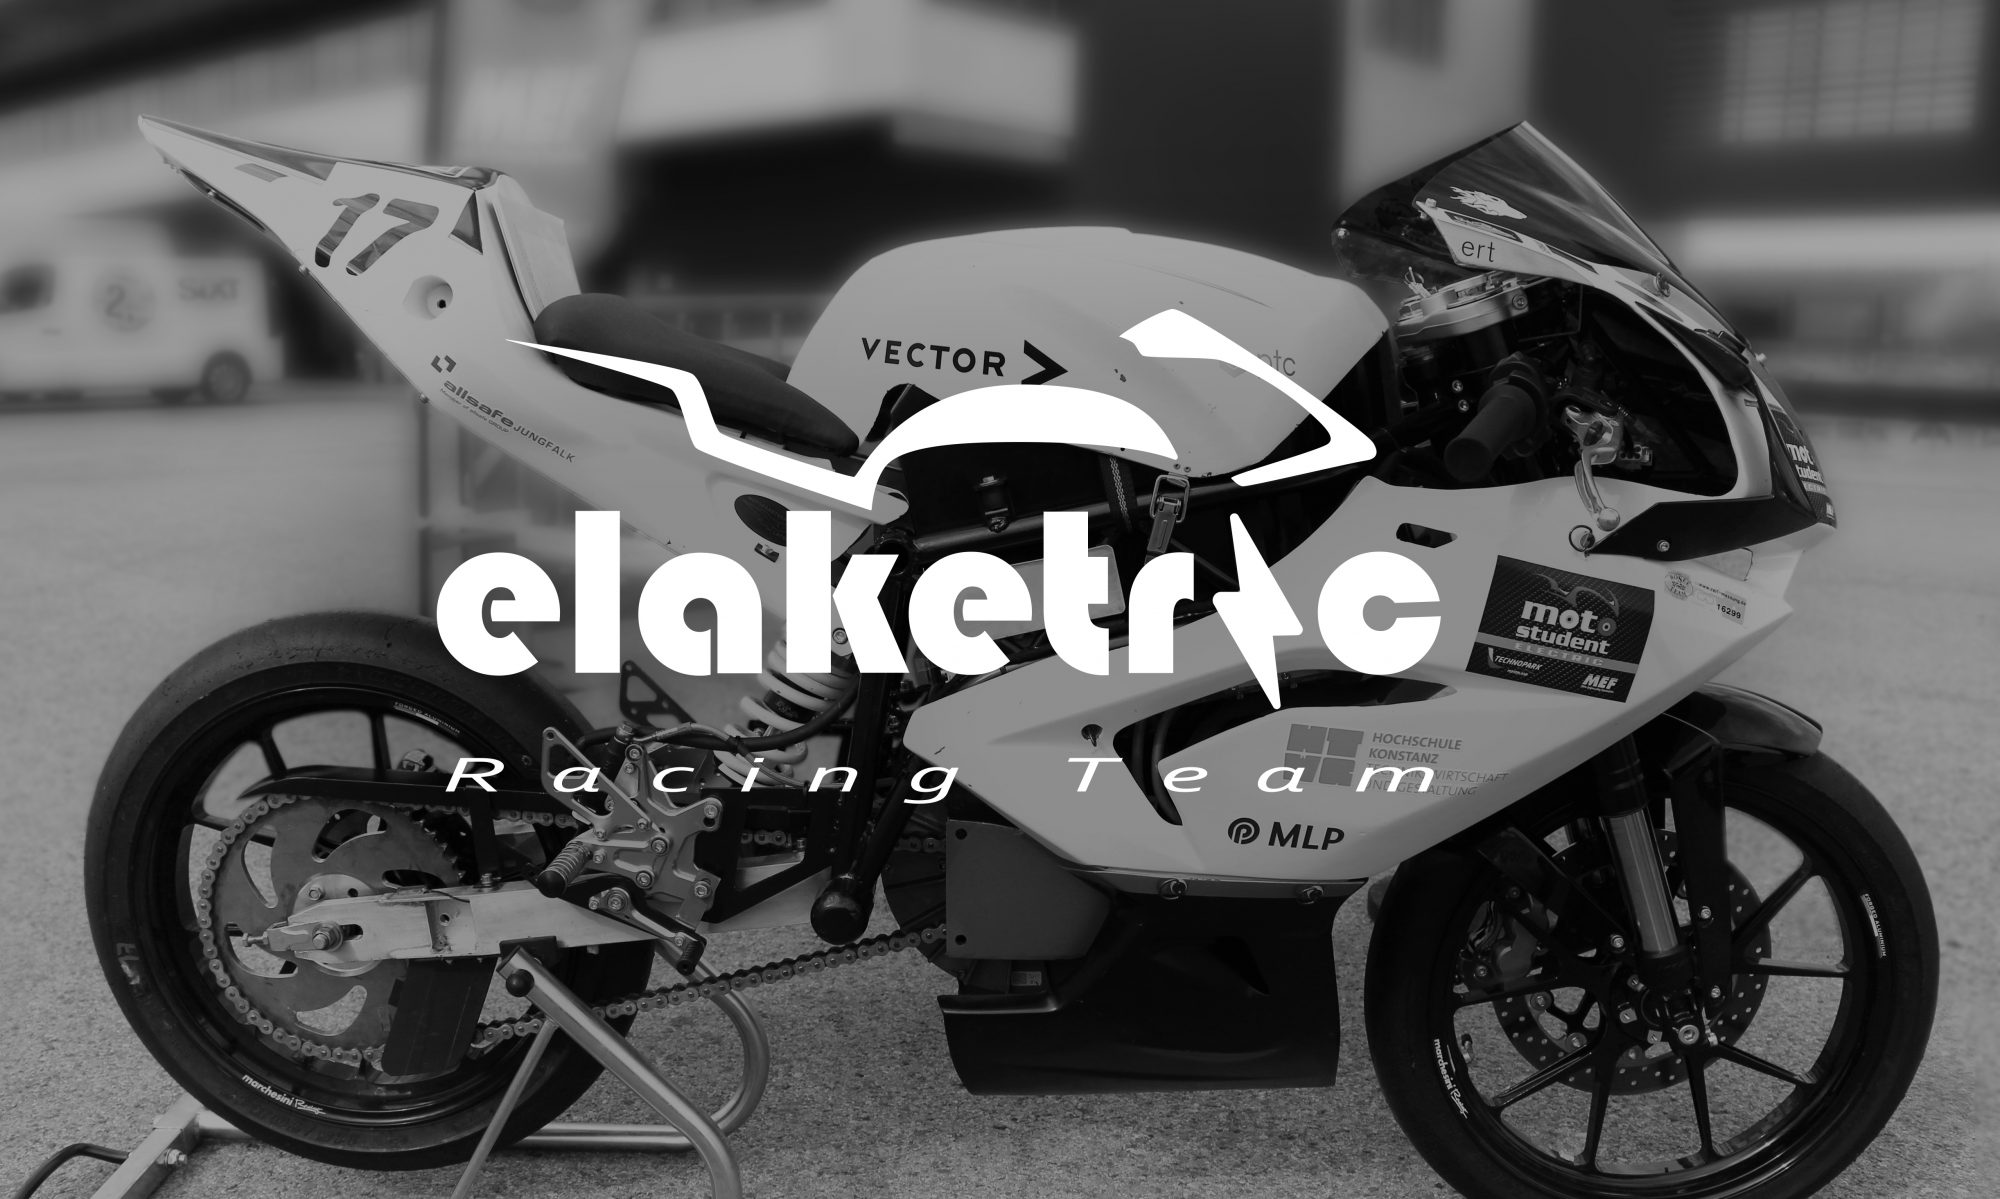 eLaketric Racing Team UAS Constance